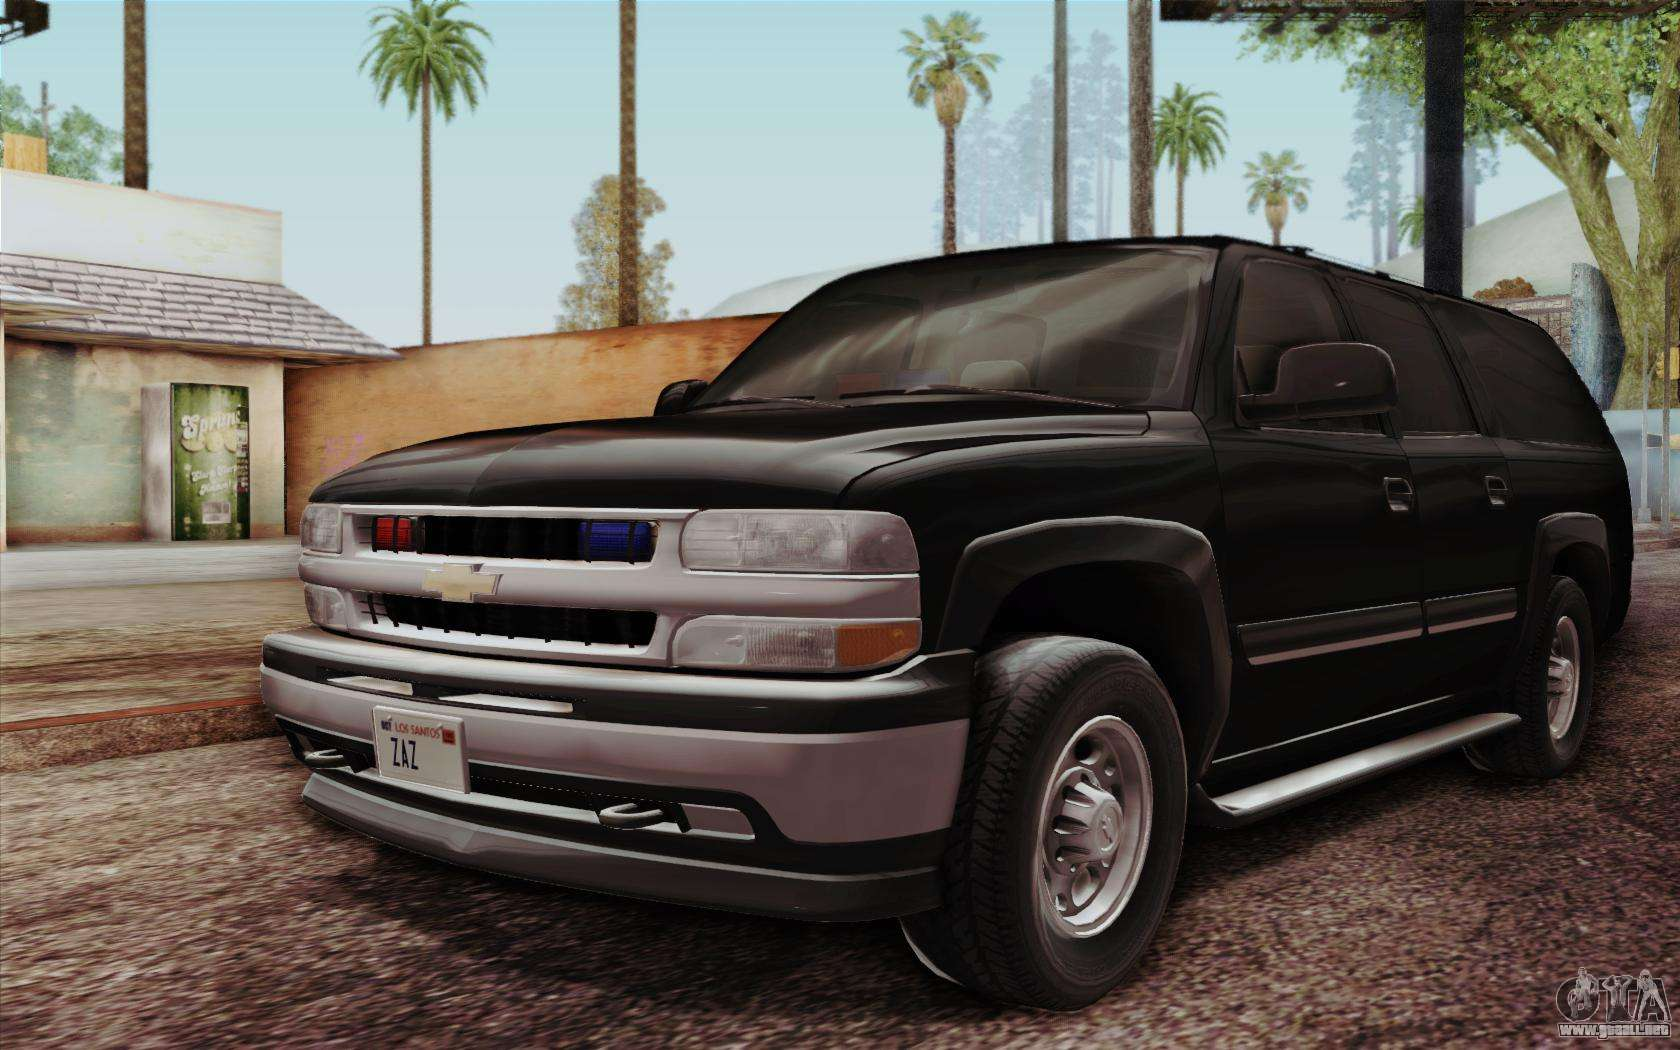 Maxresdefault as well Hqdefault in addition Maxresdefault likewise Maxresdefault besides Chevy Tahoe Z Midnight Edition. on 2014 chevrolet chevy suburban